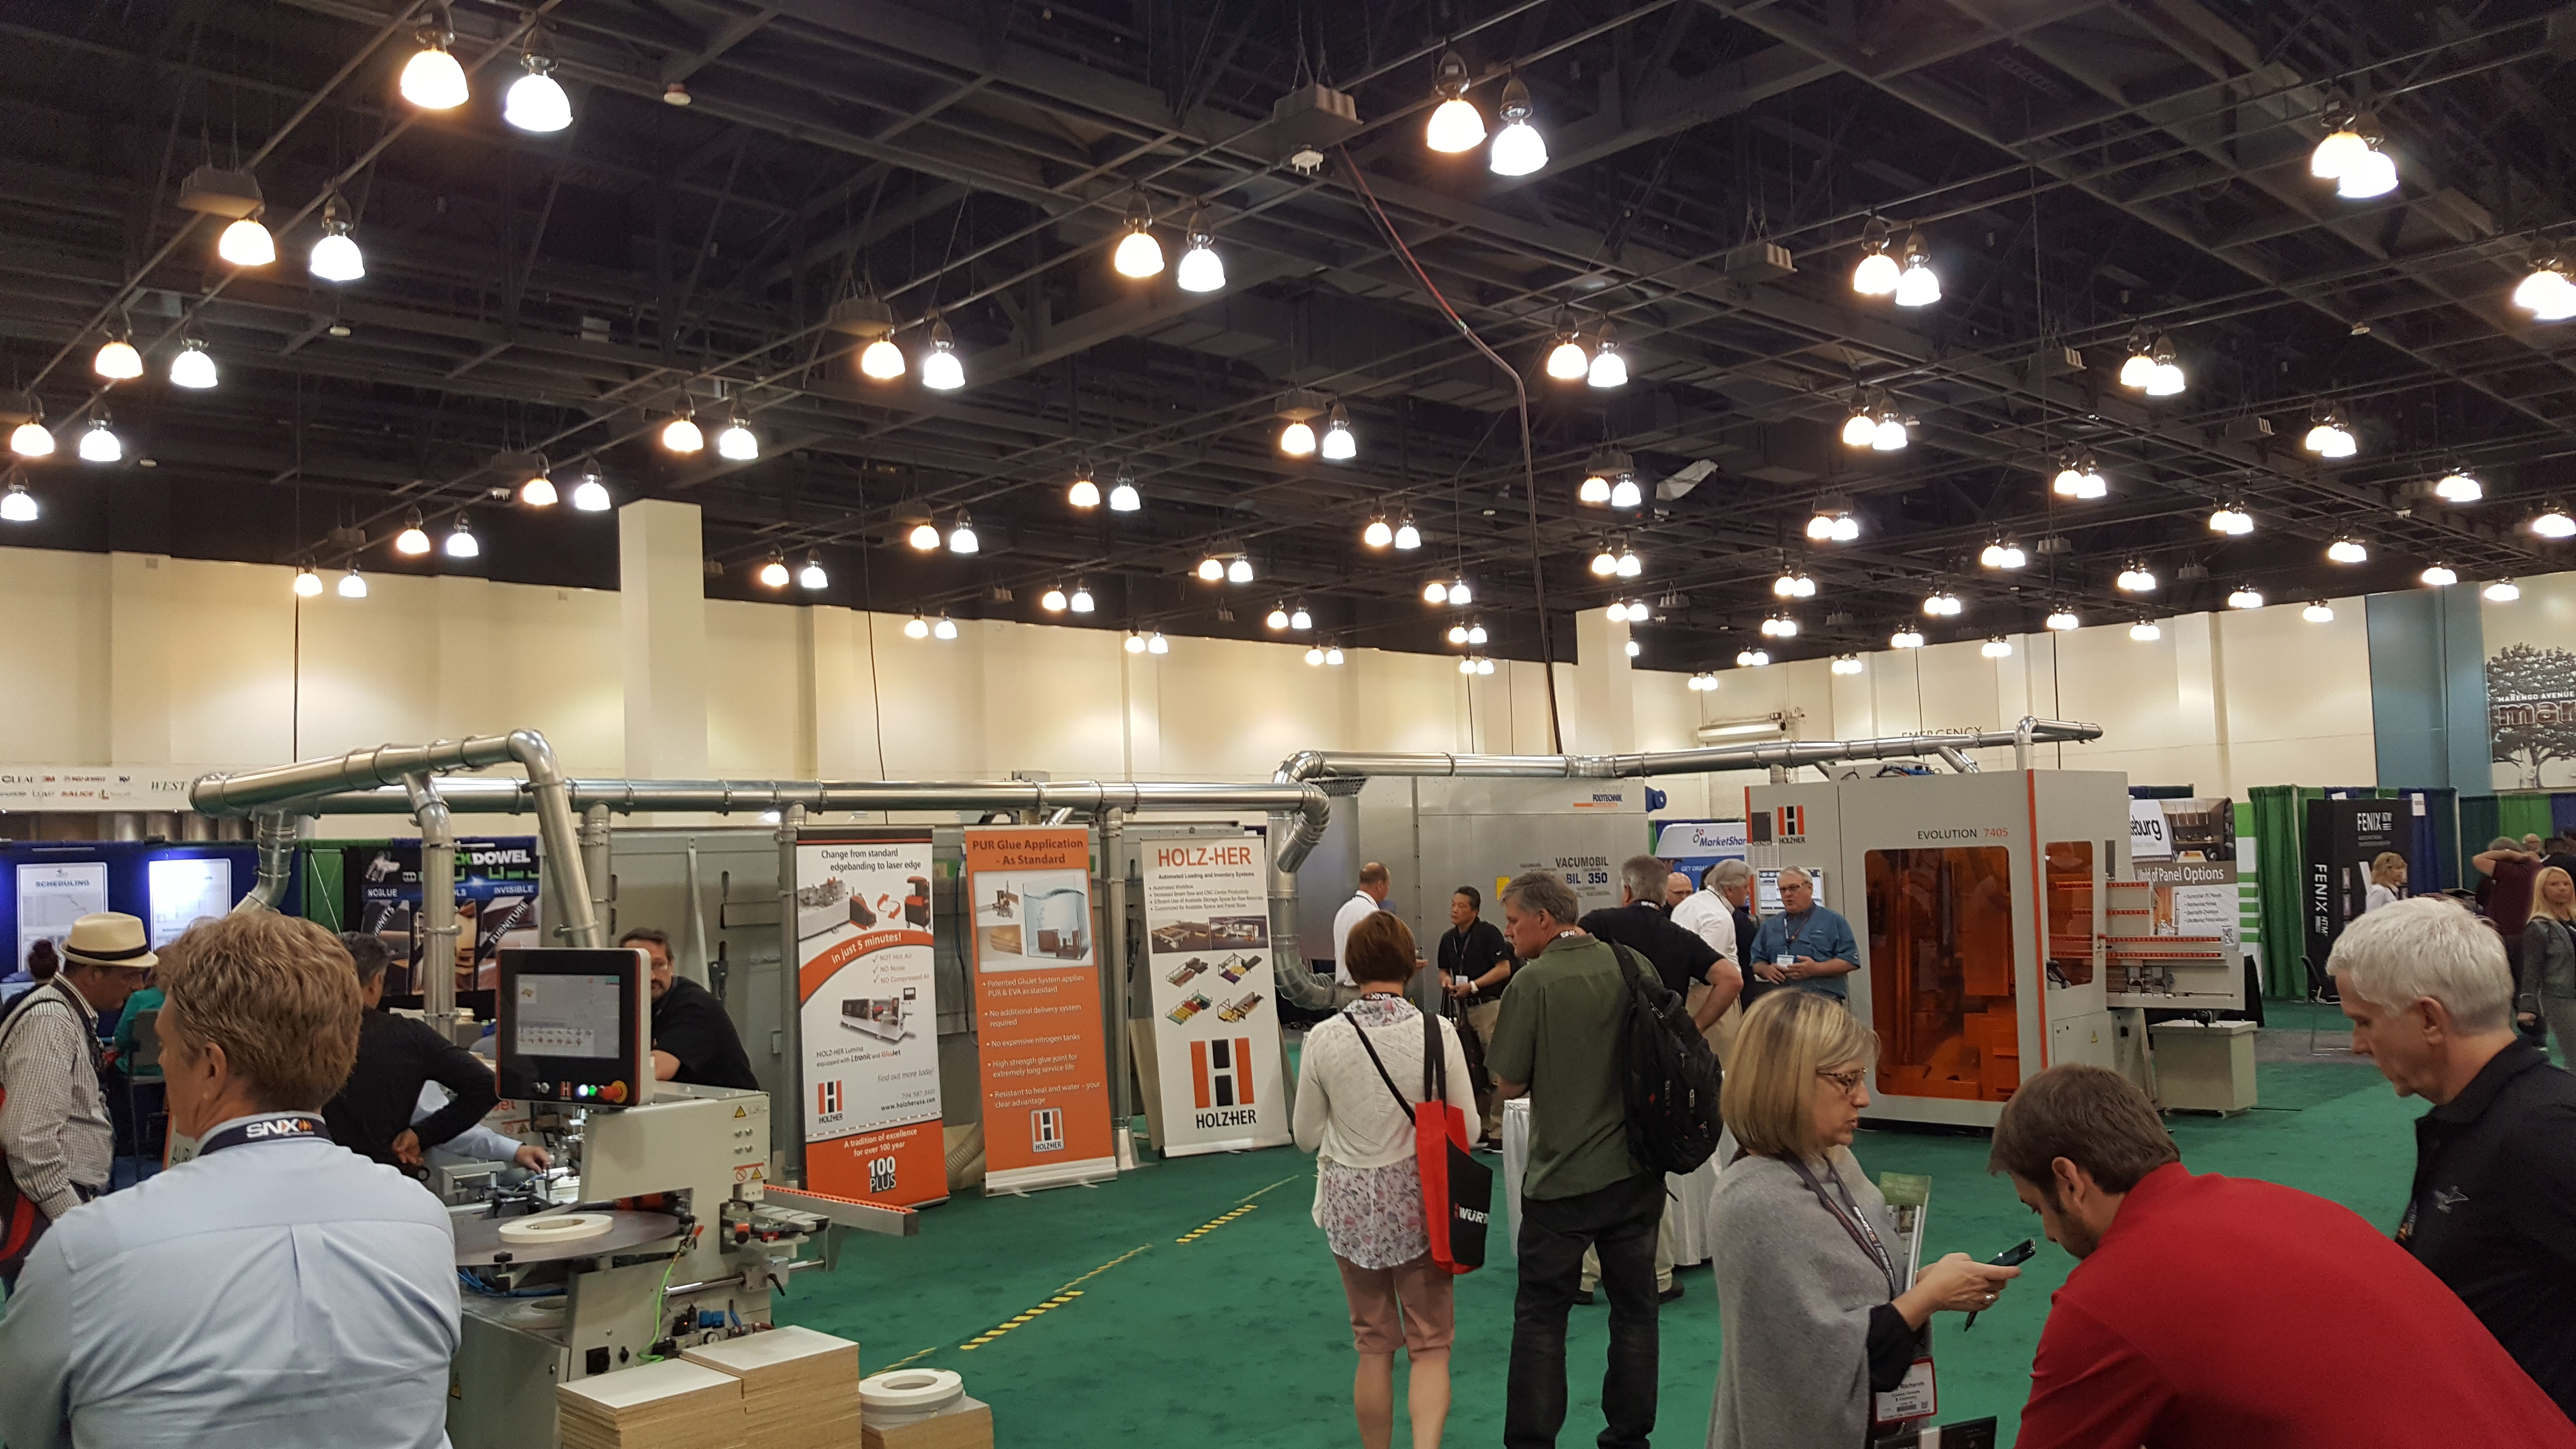 cabinets-and-closets-expo-hall-1